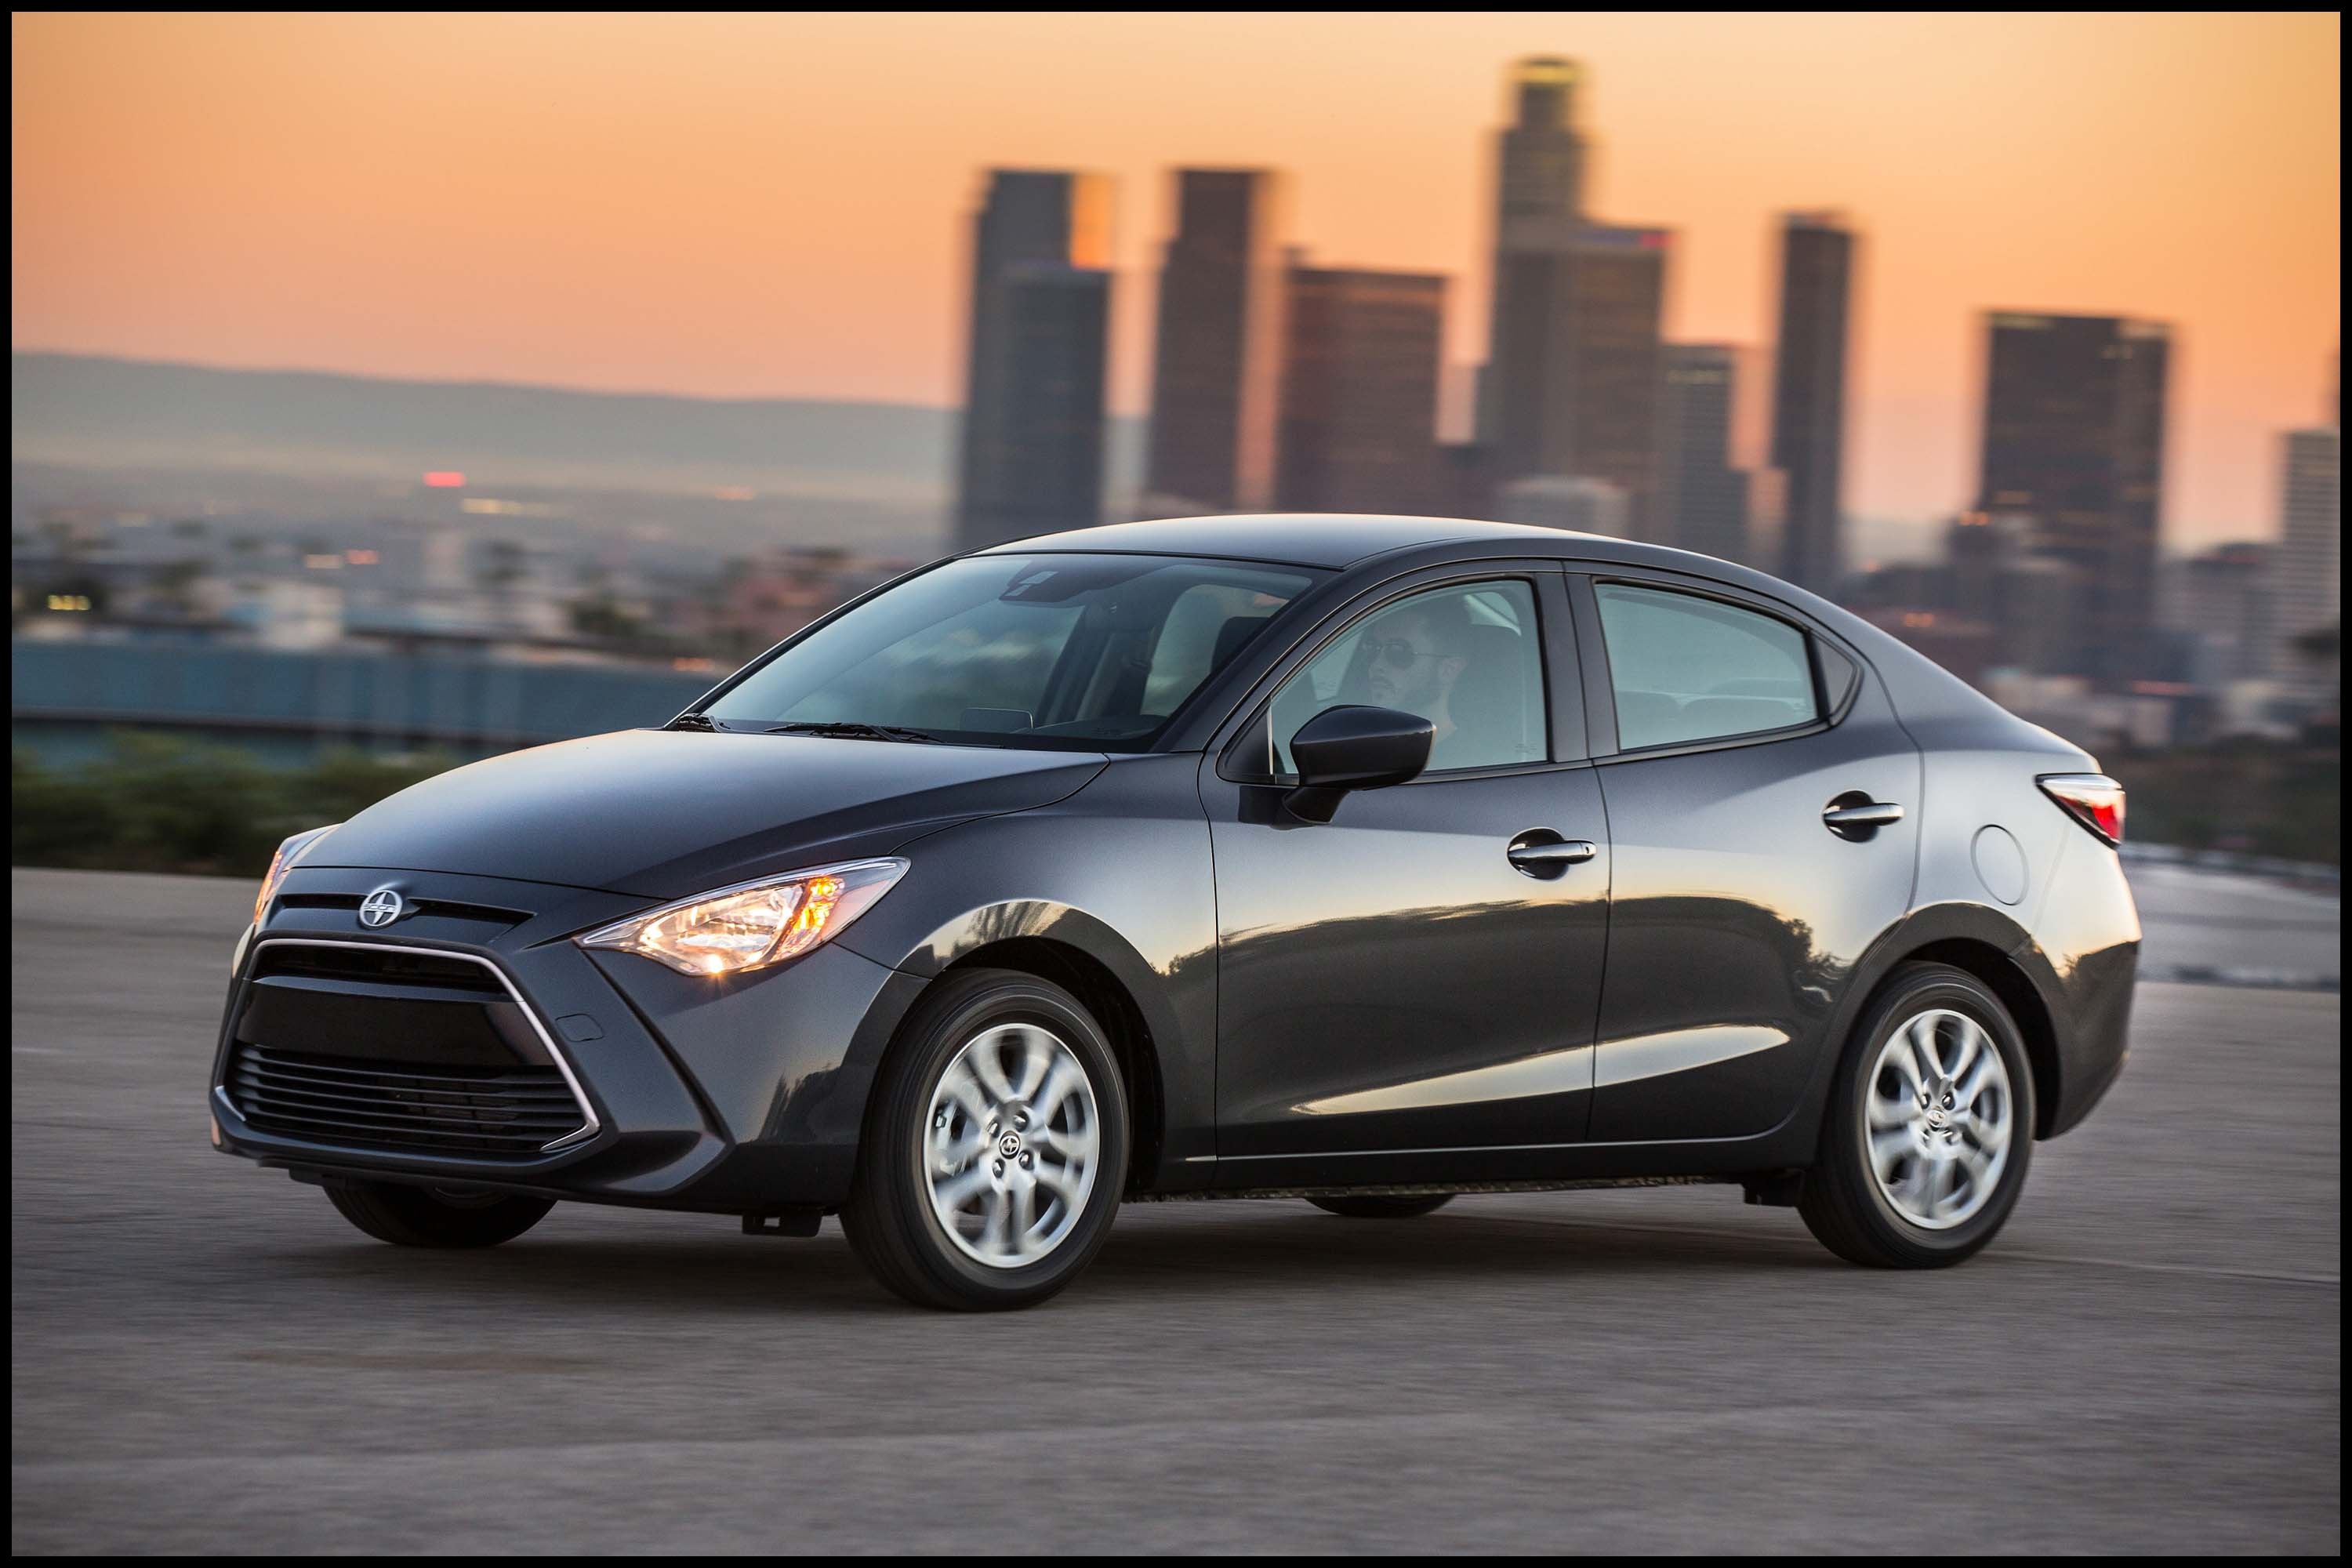 2017 Toyota Yaris iA vs Mazda 2 sedan parison